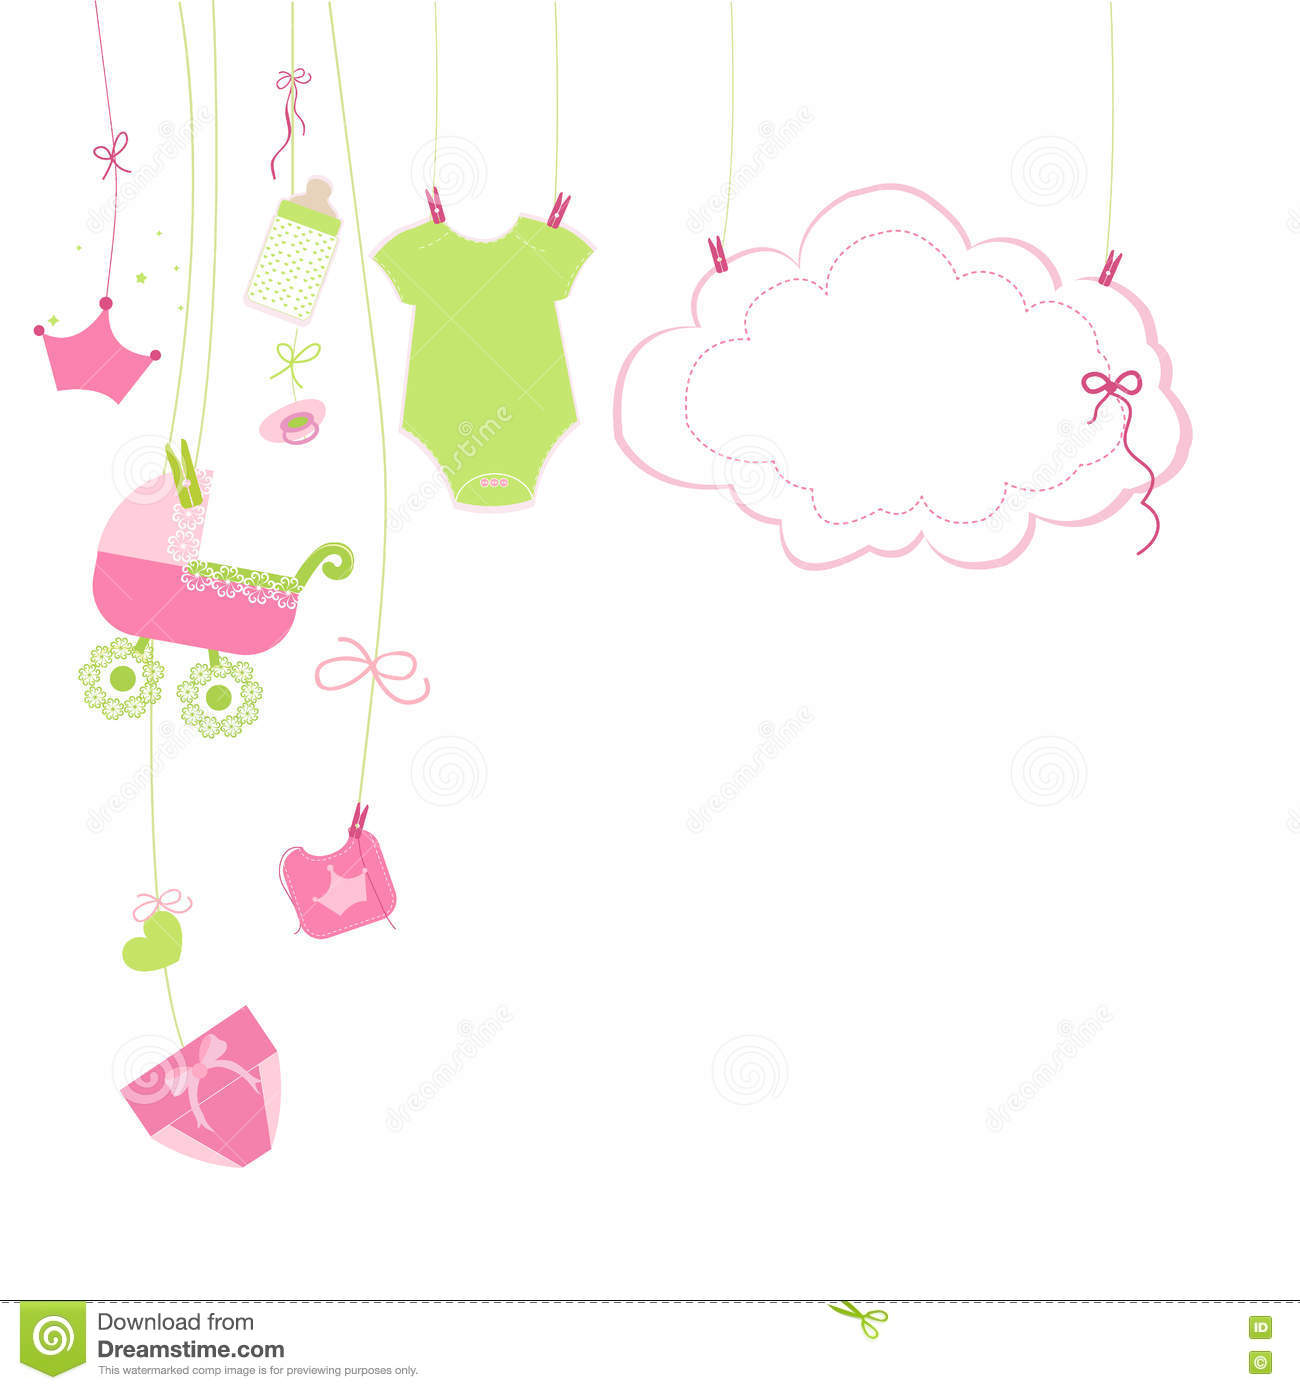 Baby shower card baby boy hanging symbols illustration stock baby newborn hanging baby girl symbols card illustration royalty free stock photos buycottarizona Gallery